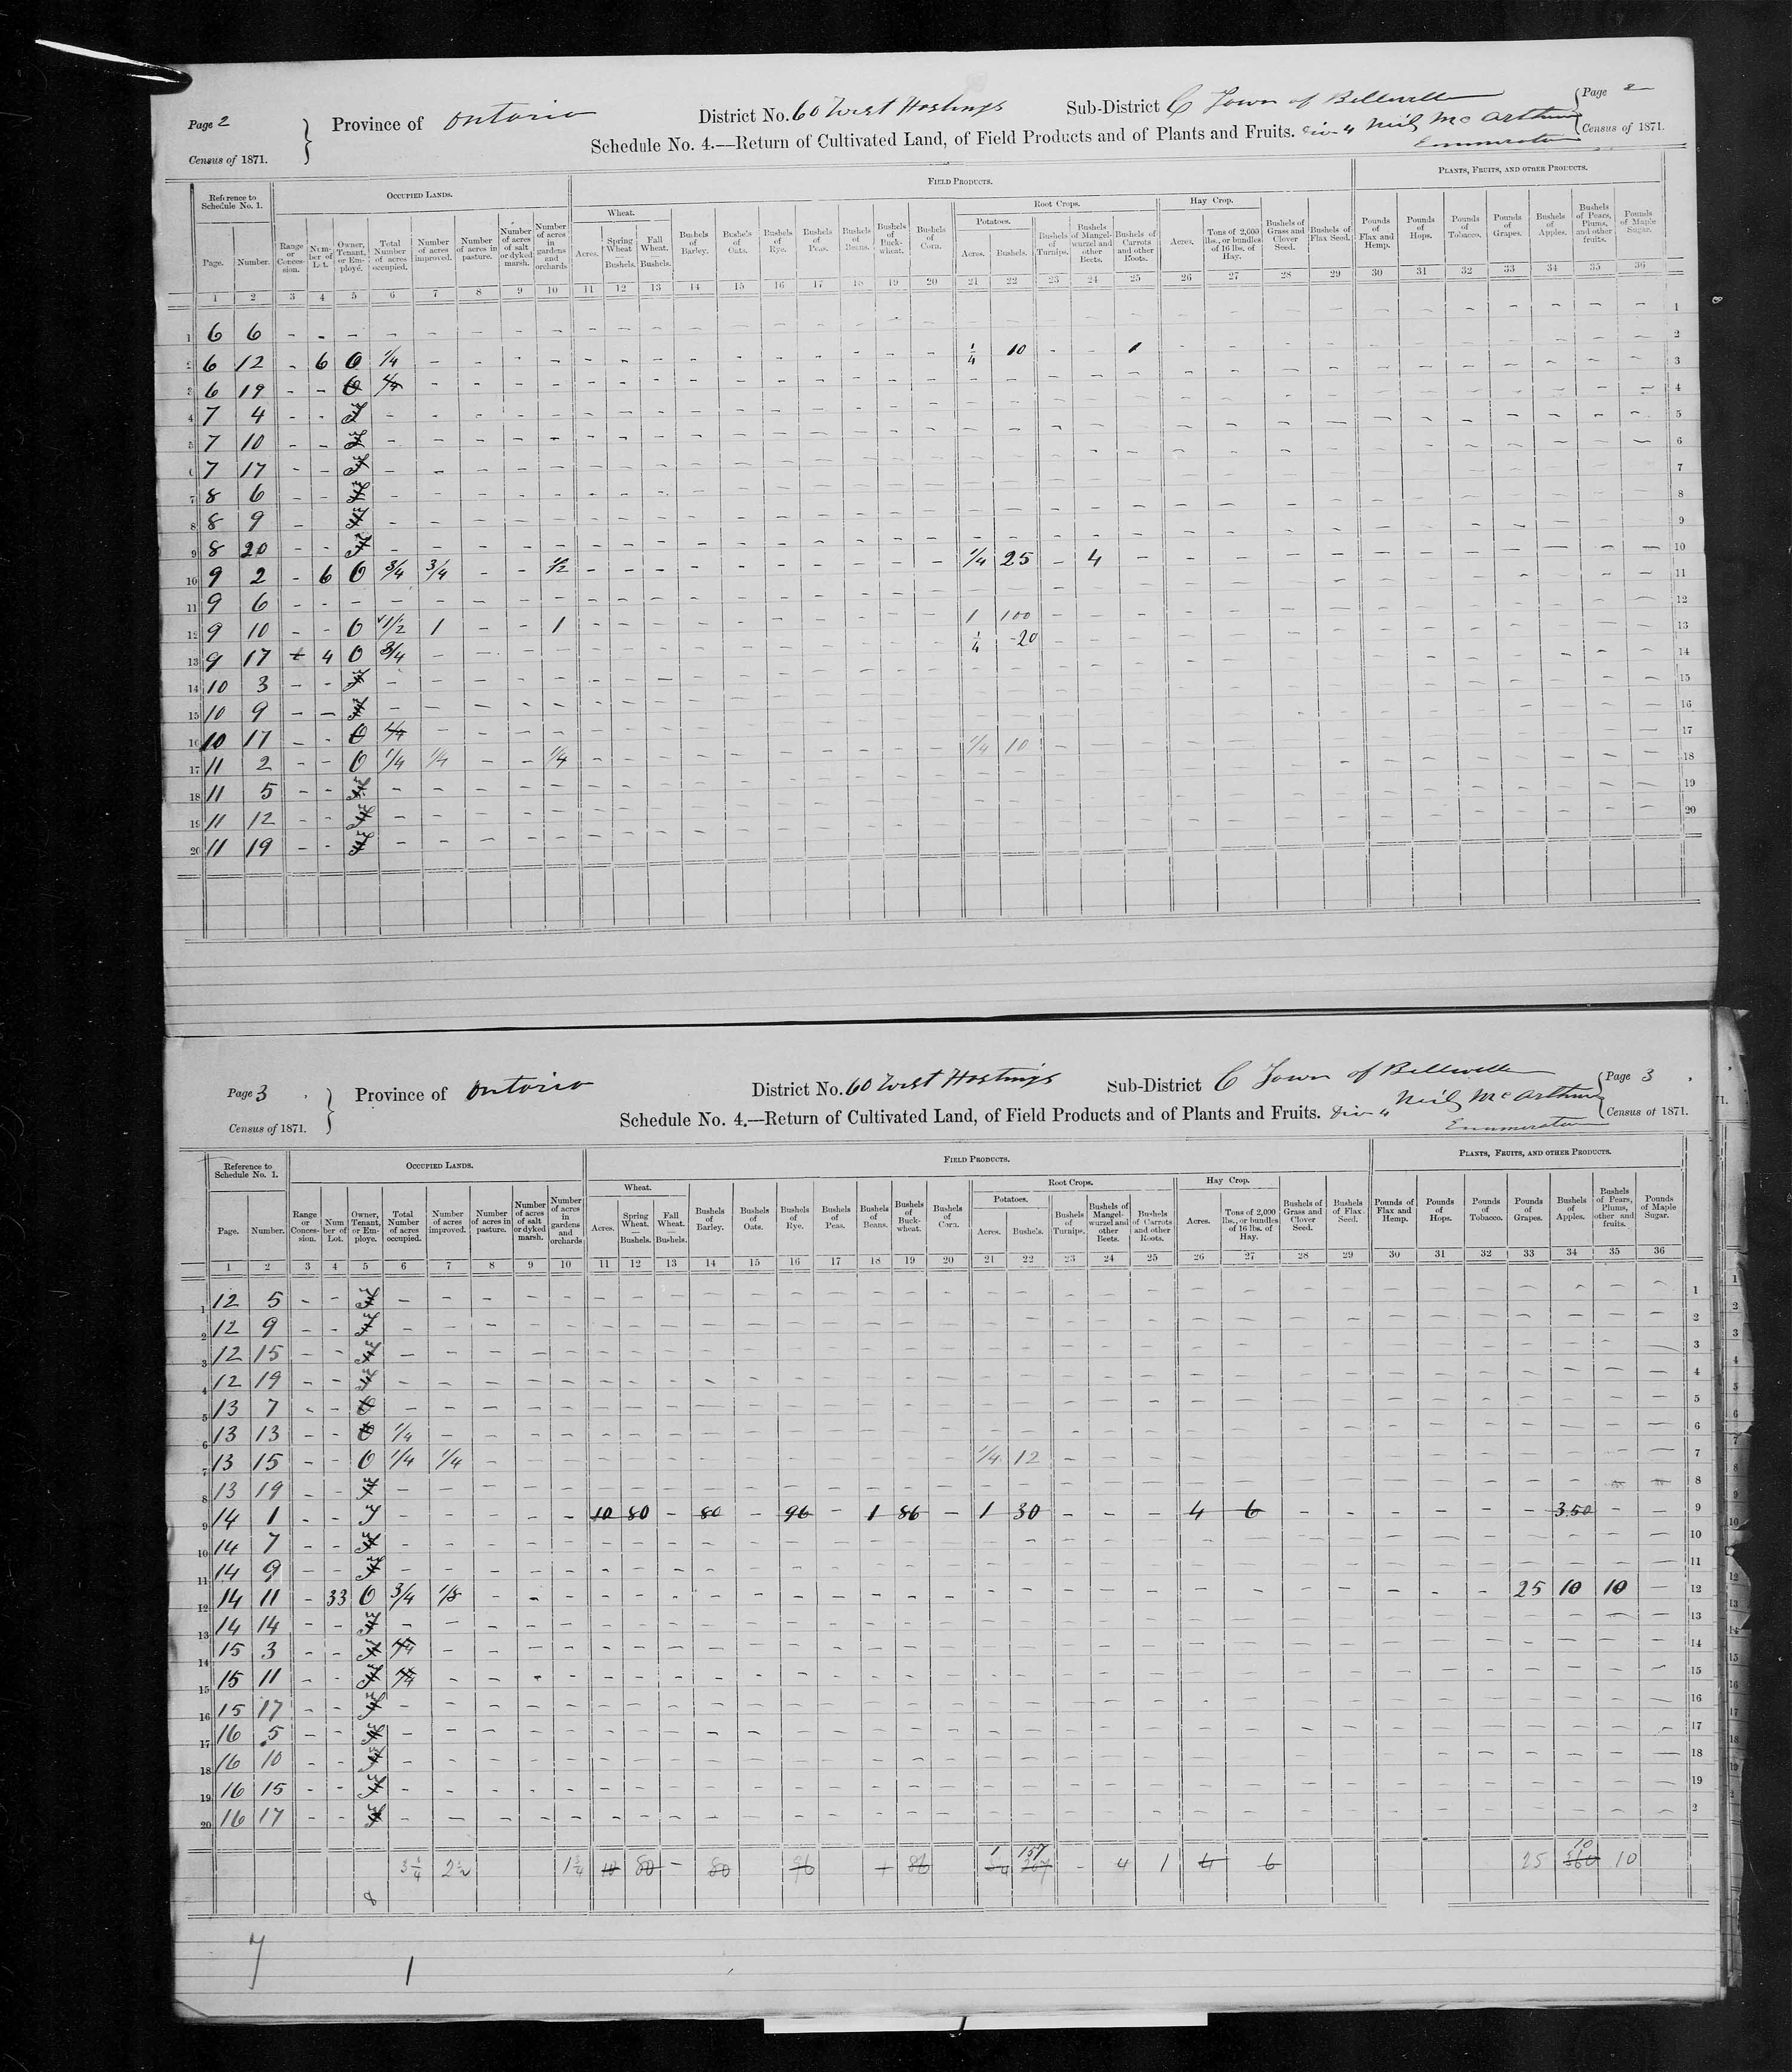 Title: Census of Canada, 1871 - Mikan Number: 142105 - Microform: c-9991